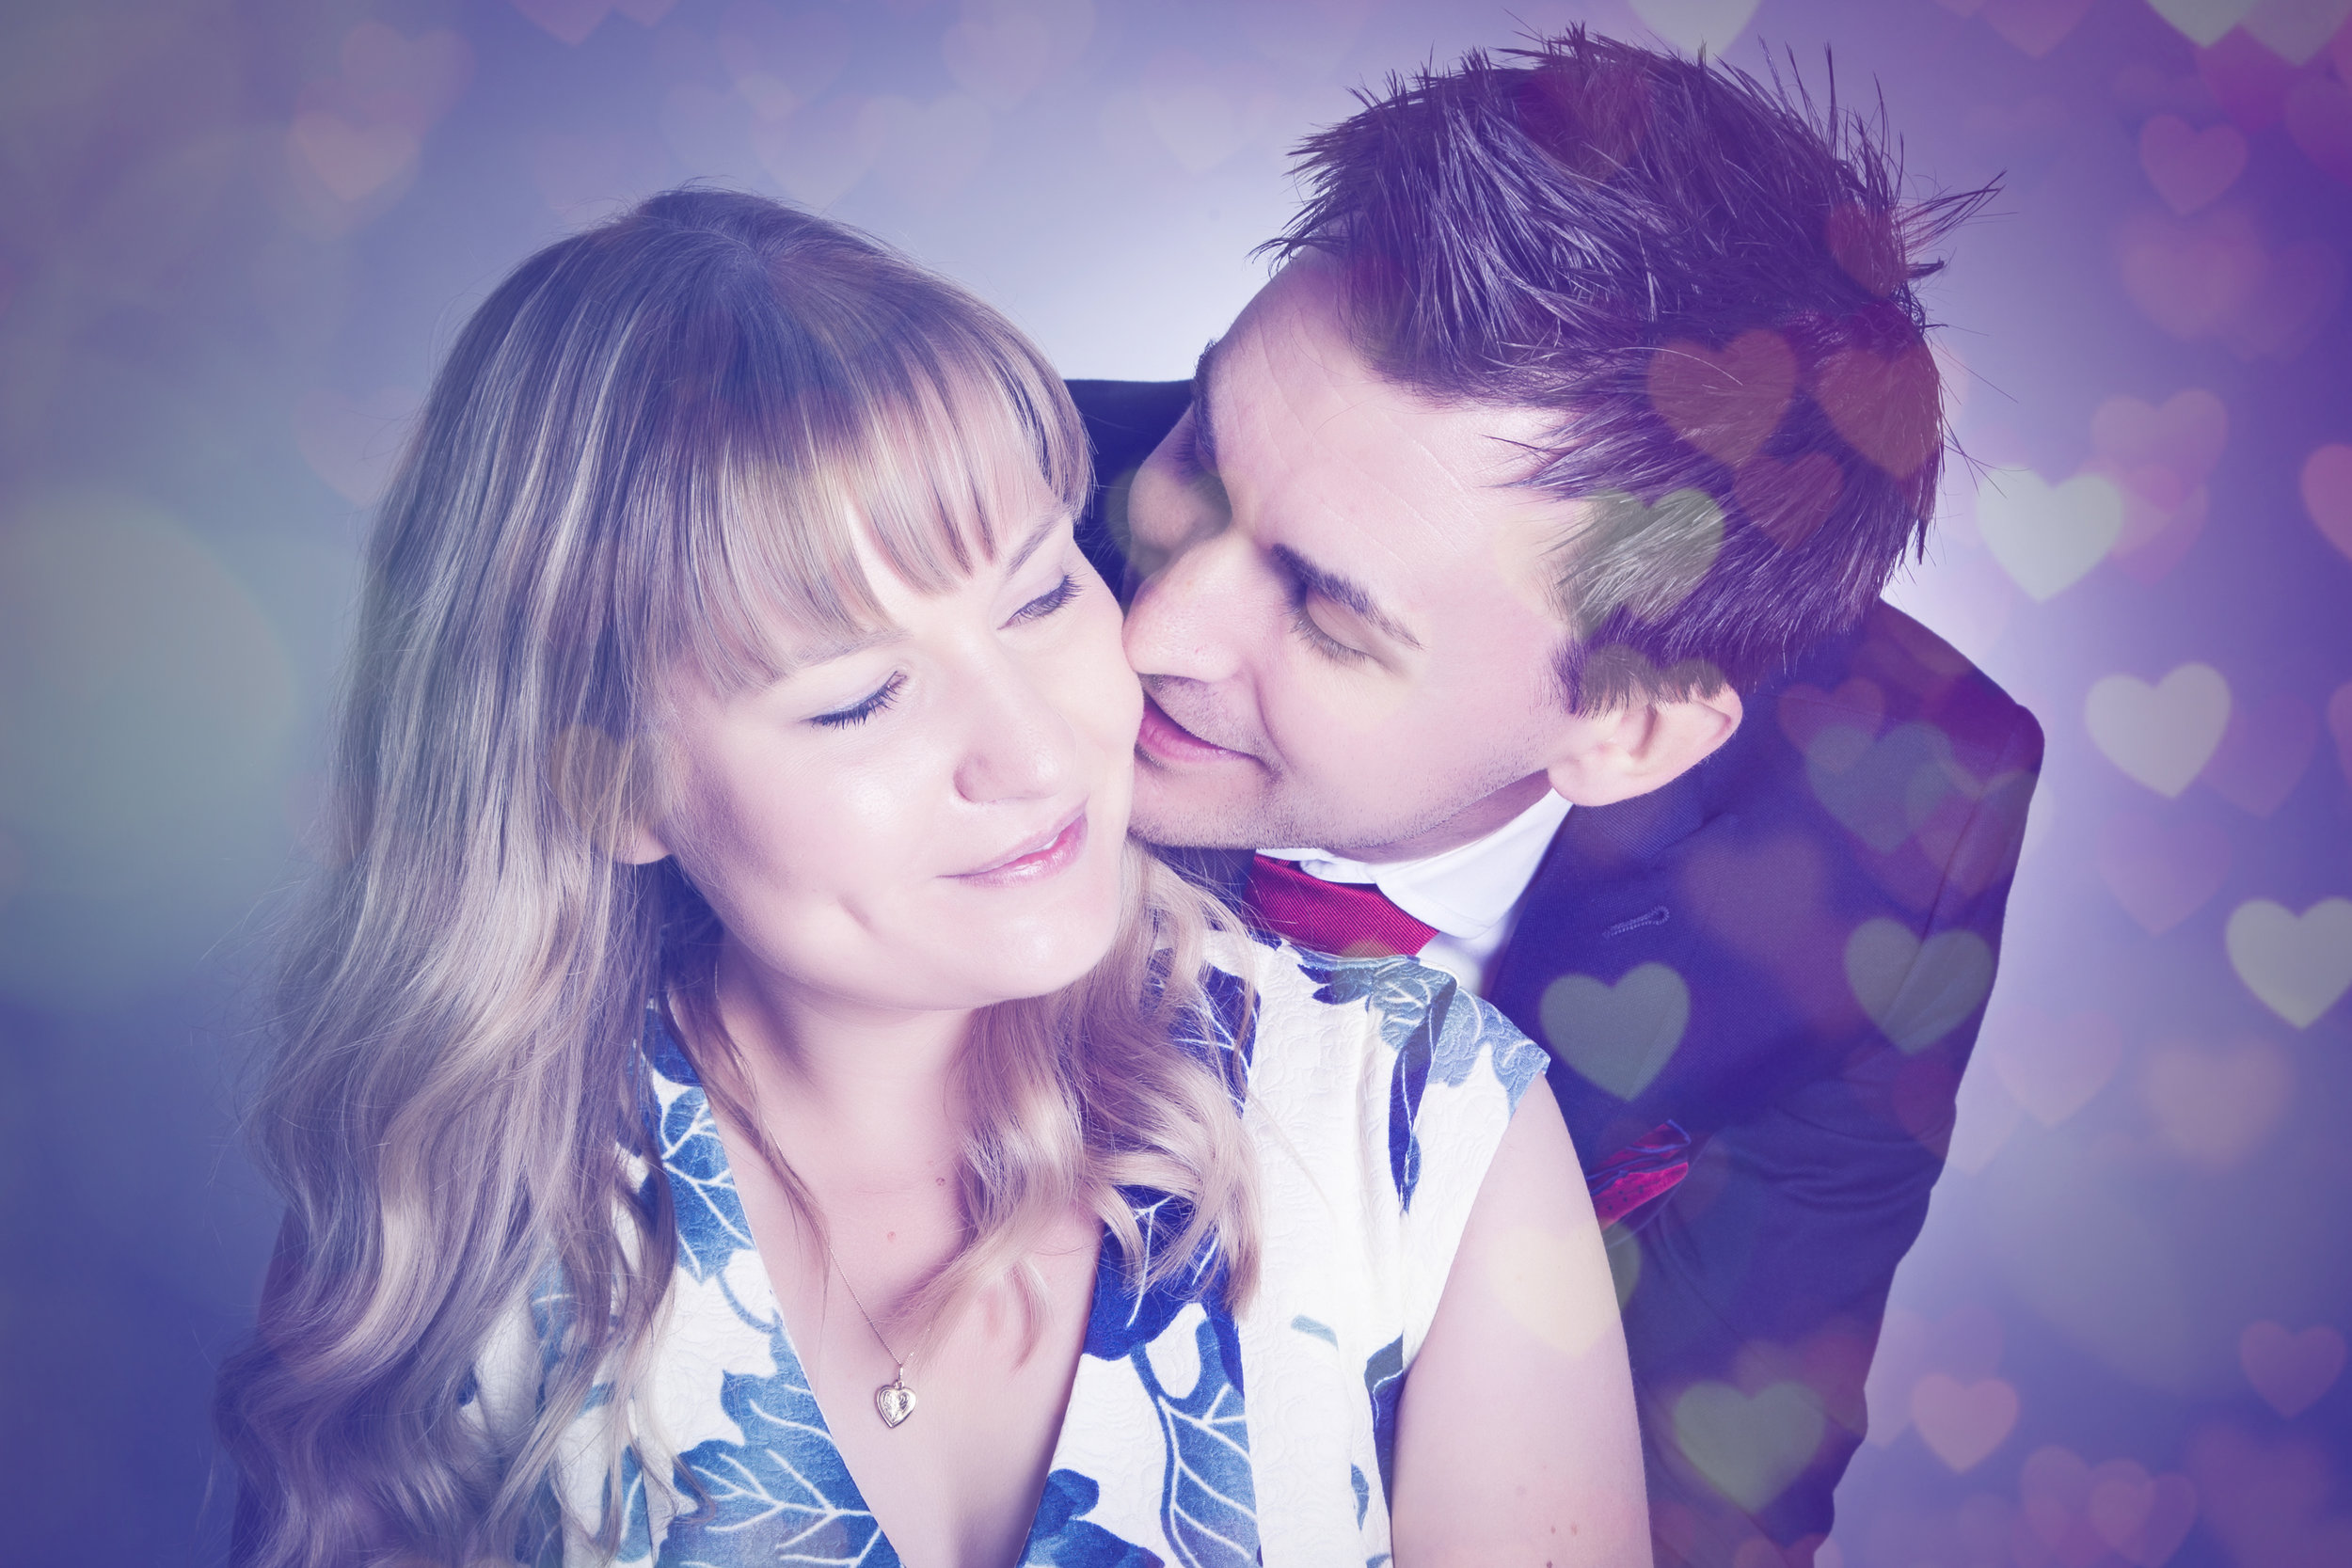 zigzag-photography-leicester-valentines-day-gift-ideas-couples-shoot-session-love-colour.JPG